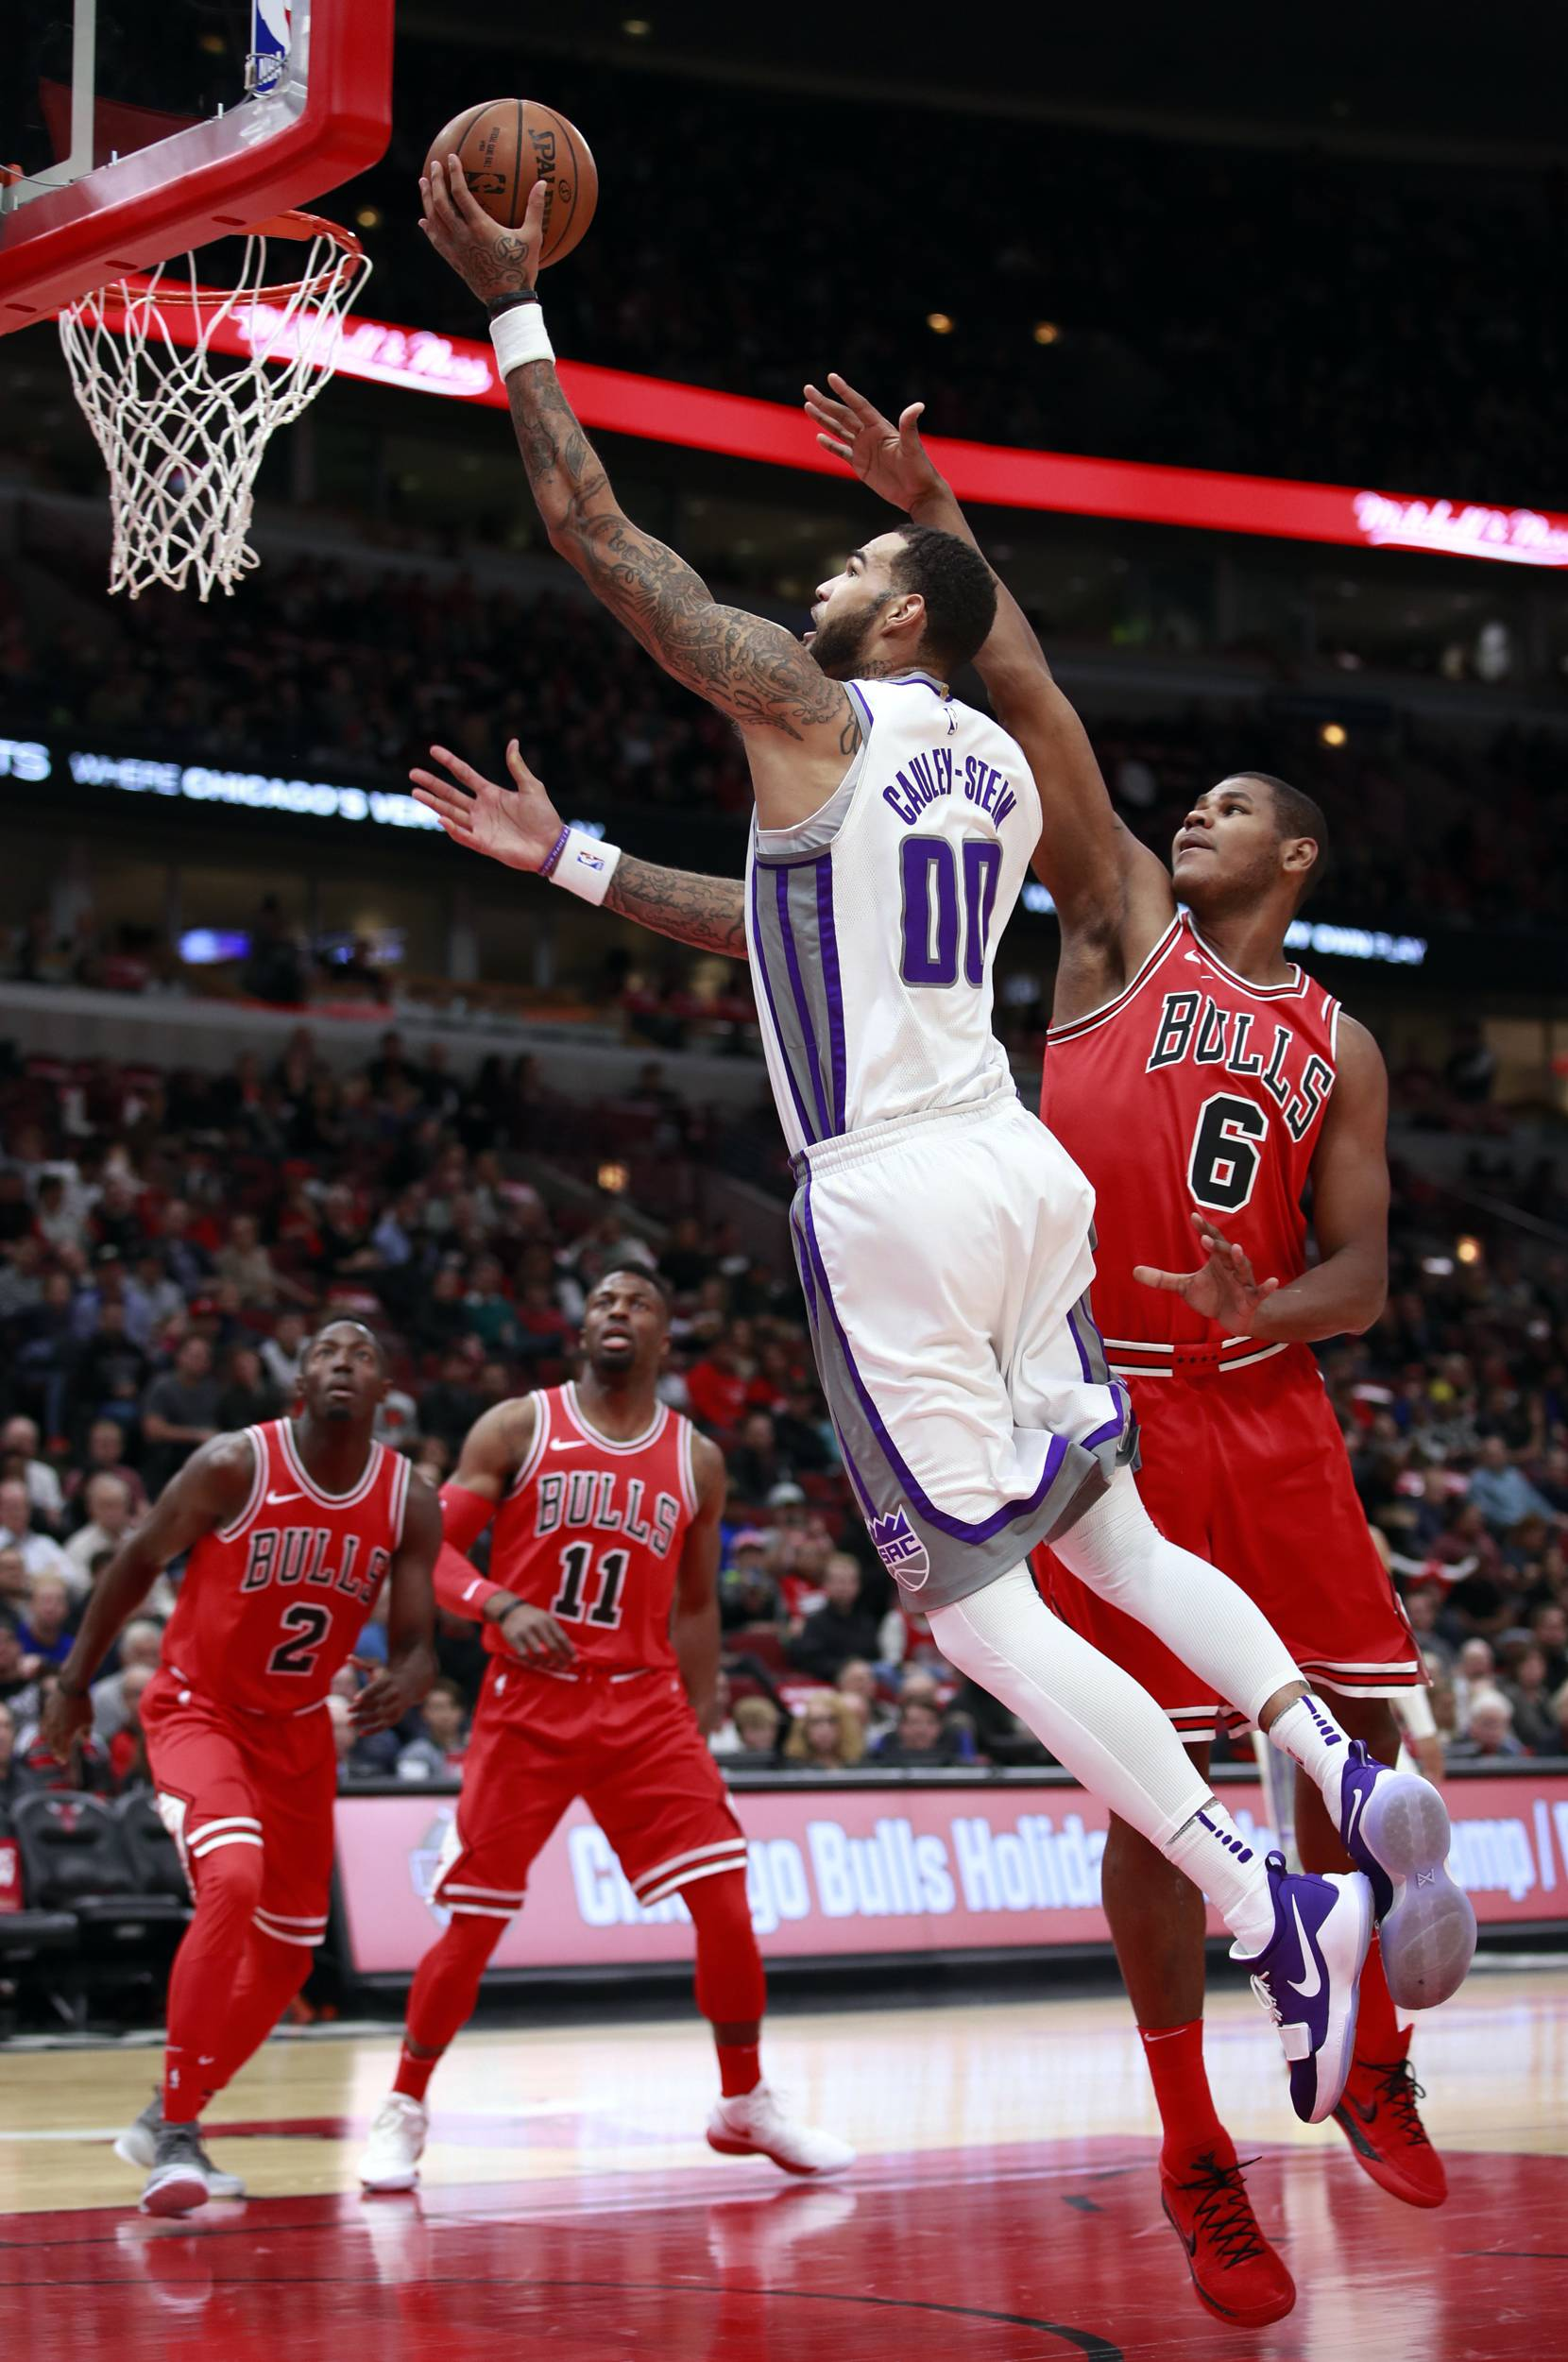 Another close call, but Chicago Bulls lose to Kings